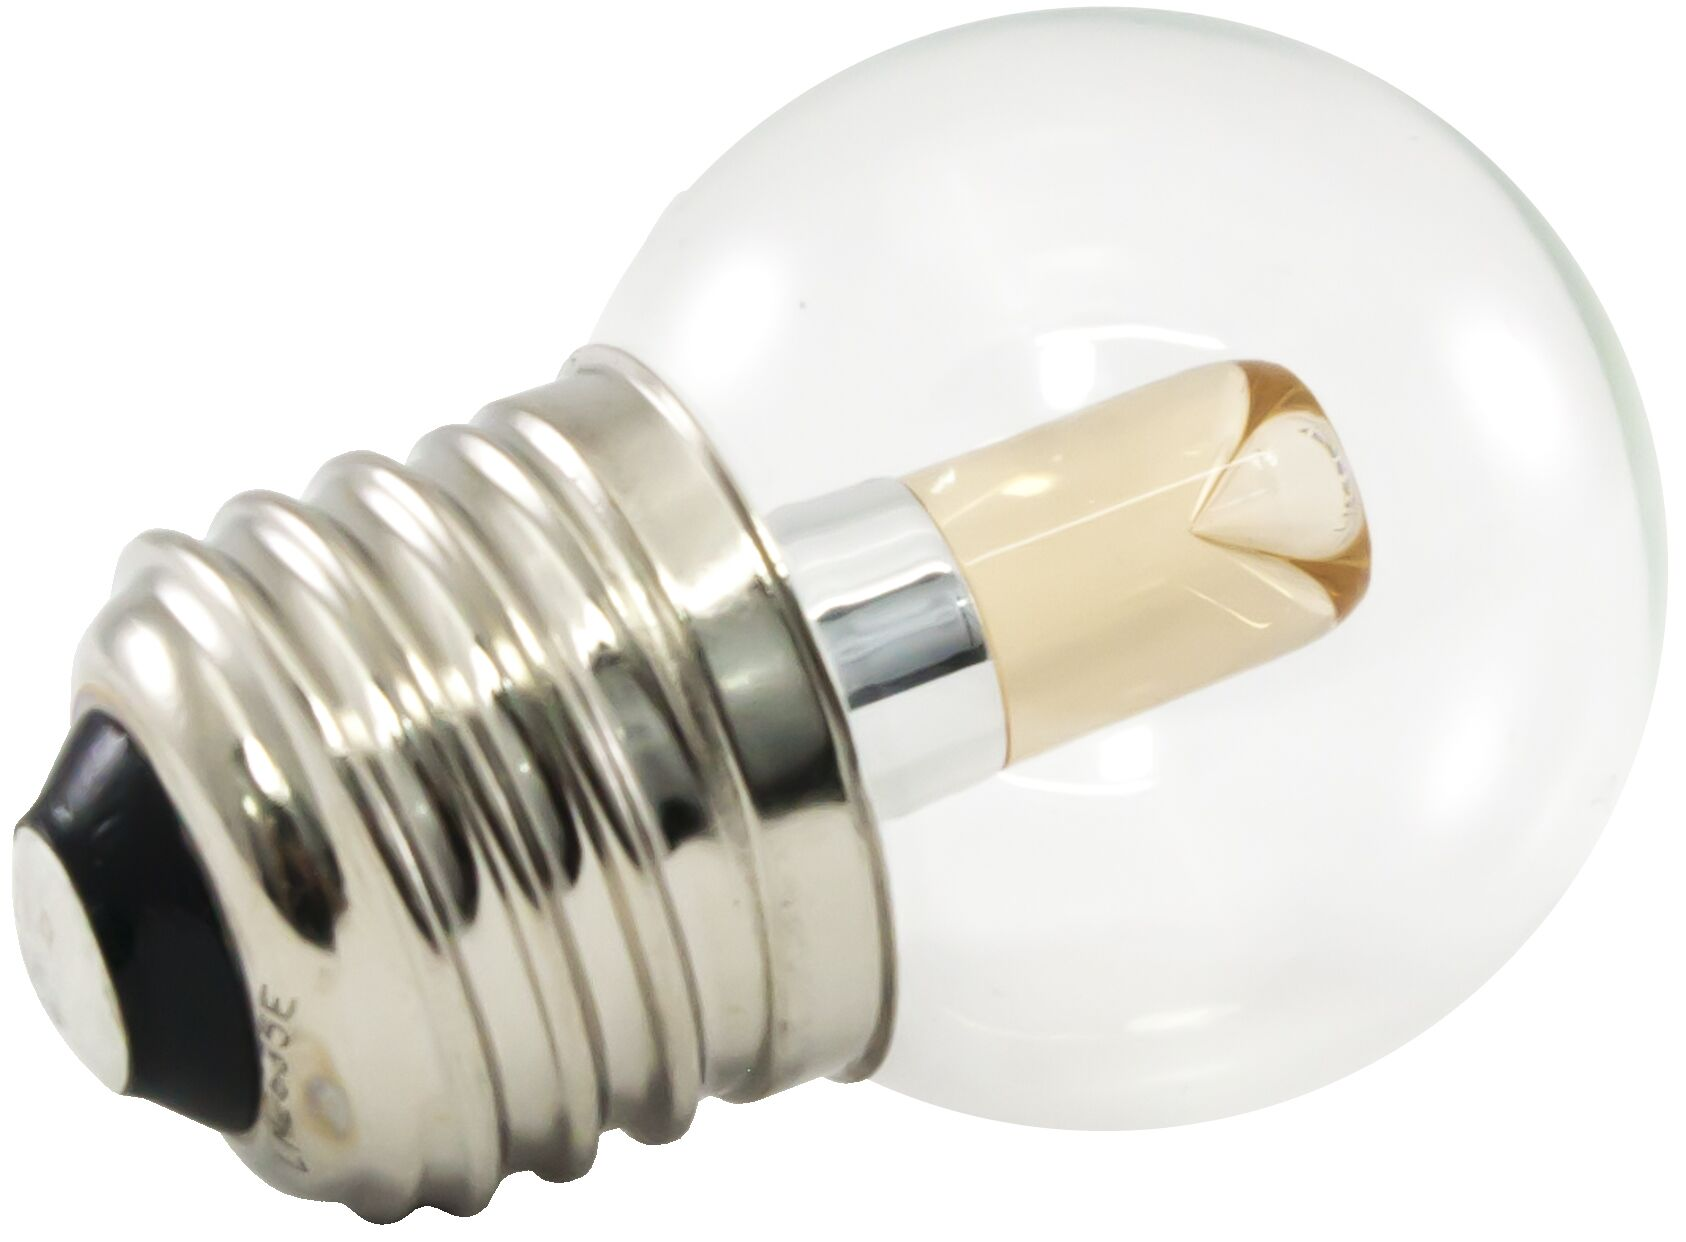 E26/Medium LED Light Bulb Wattage: 1.2W, Bulb Temperature: 1900K